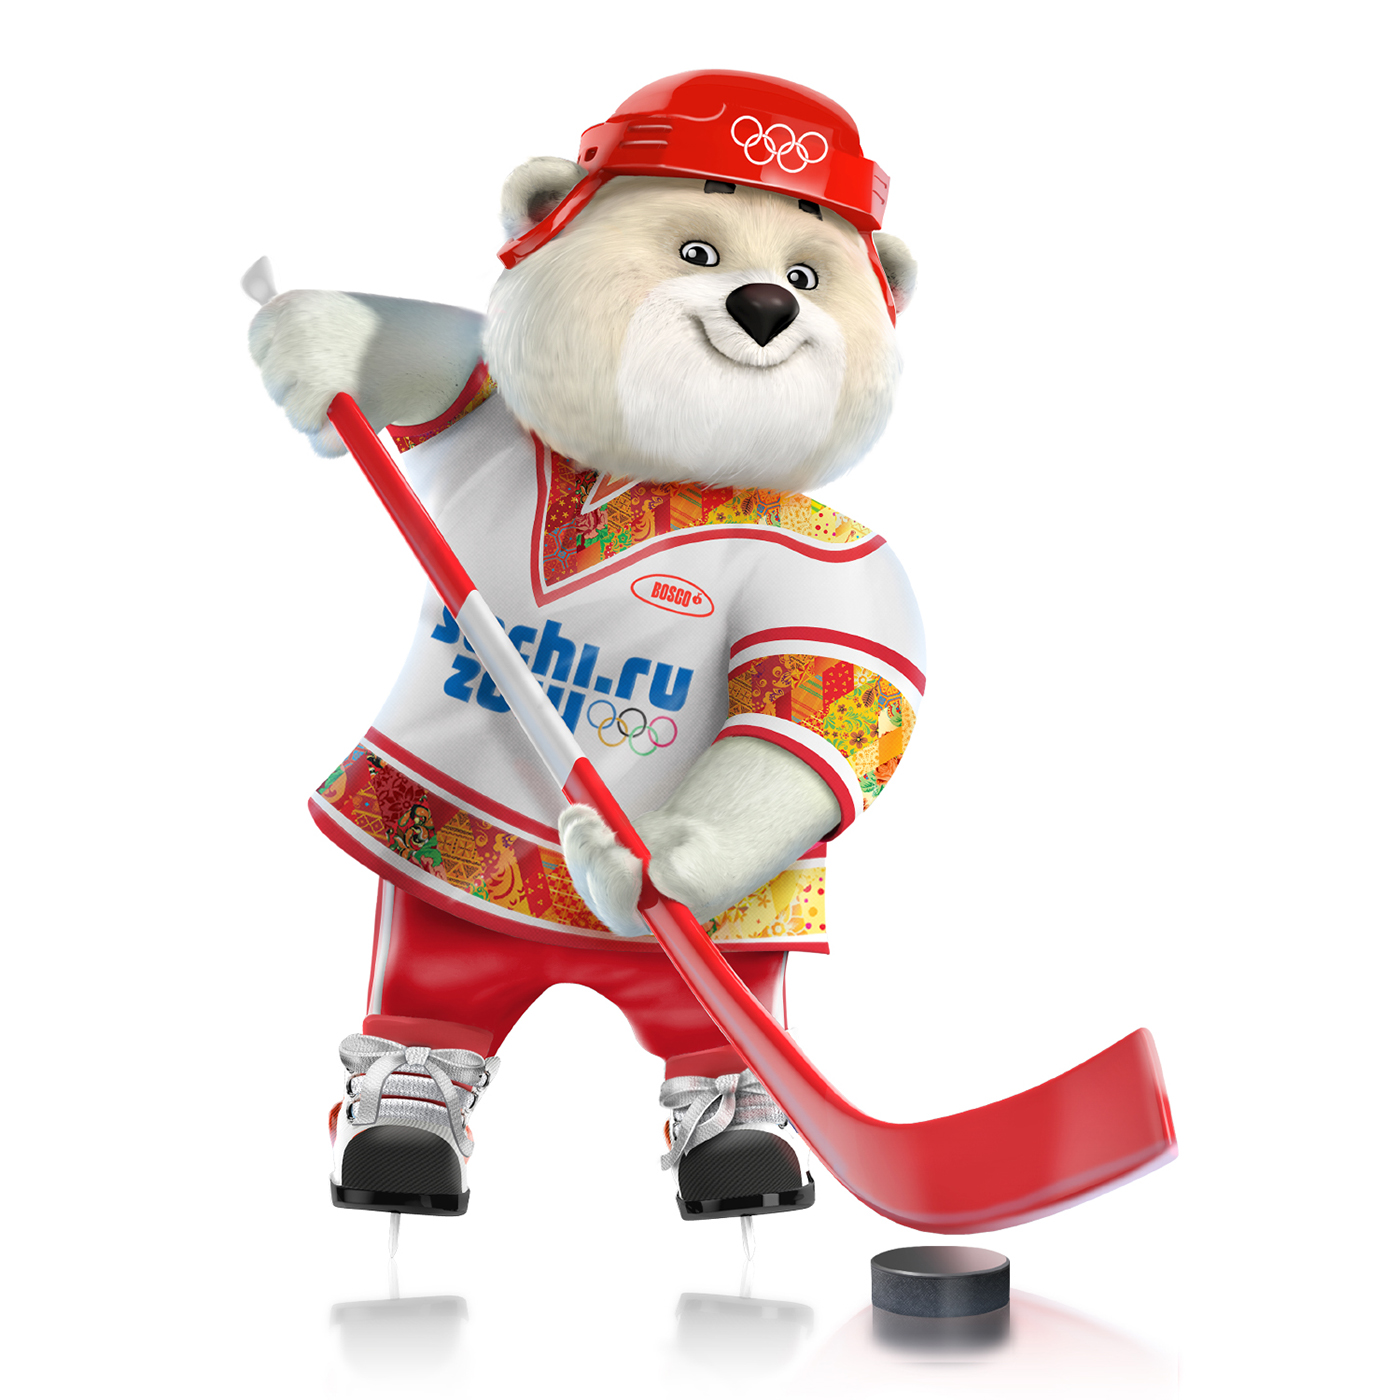 Sochi 2014 Winter Olympic Games in Russia |Winter Olympics 2014 Mascot Names